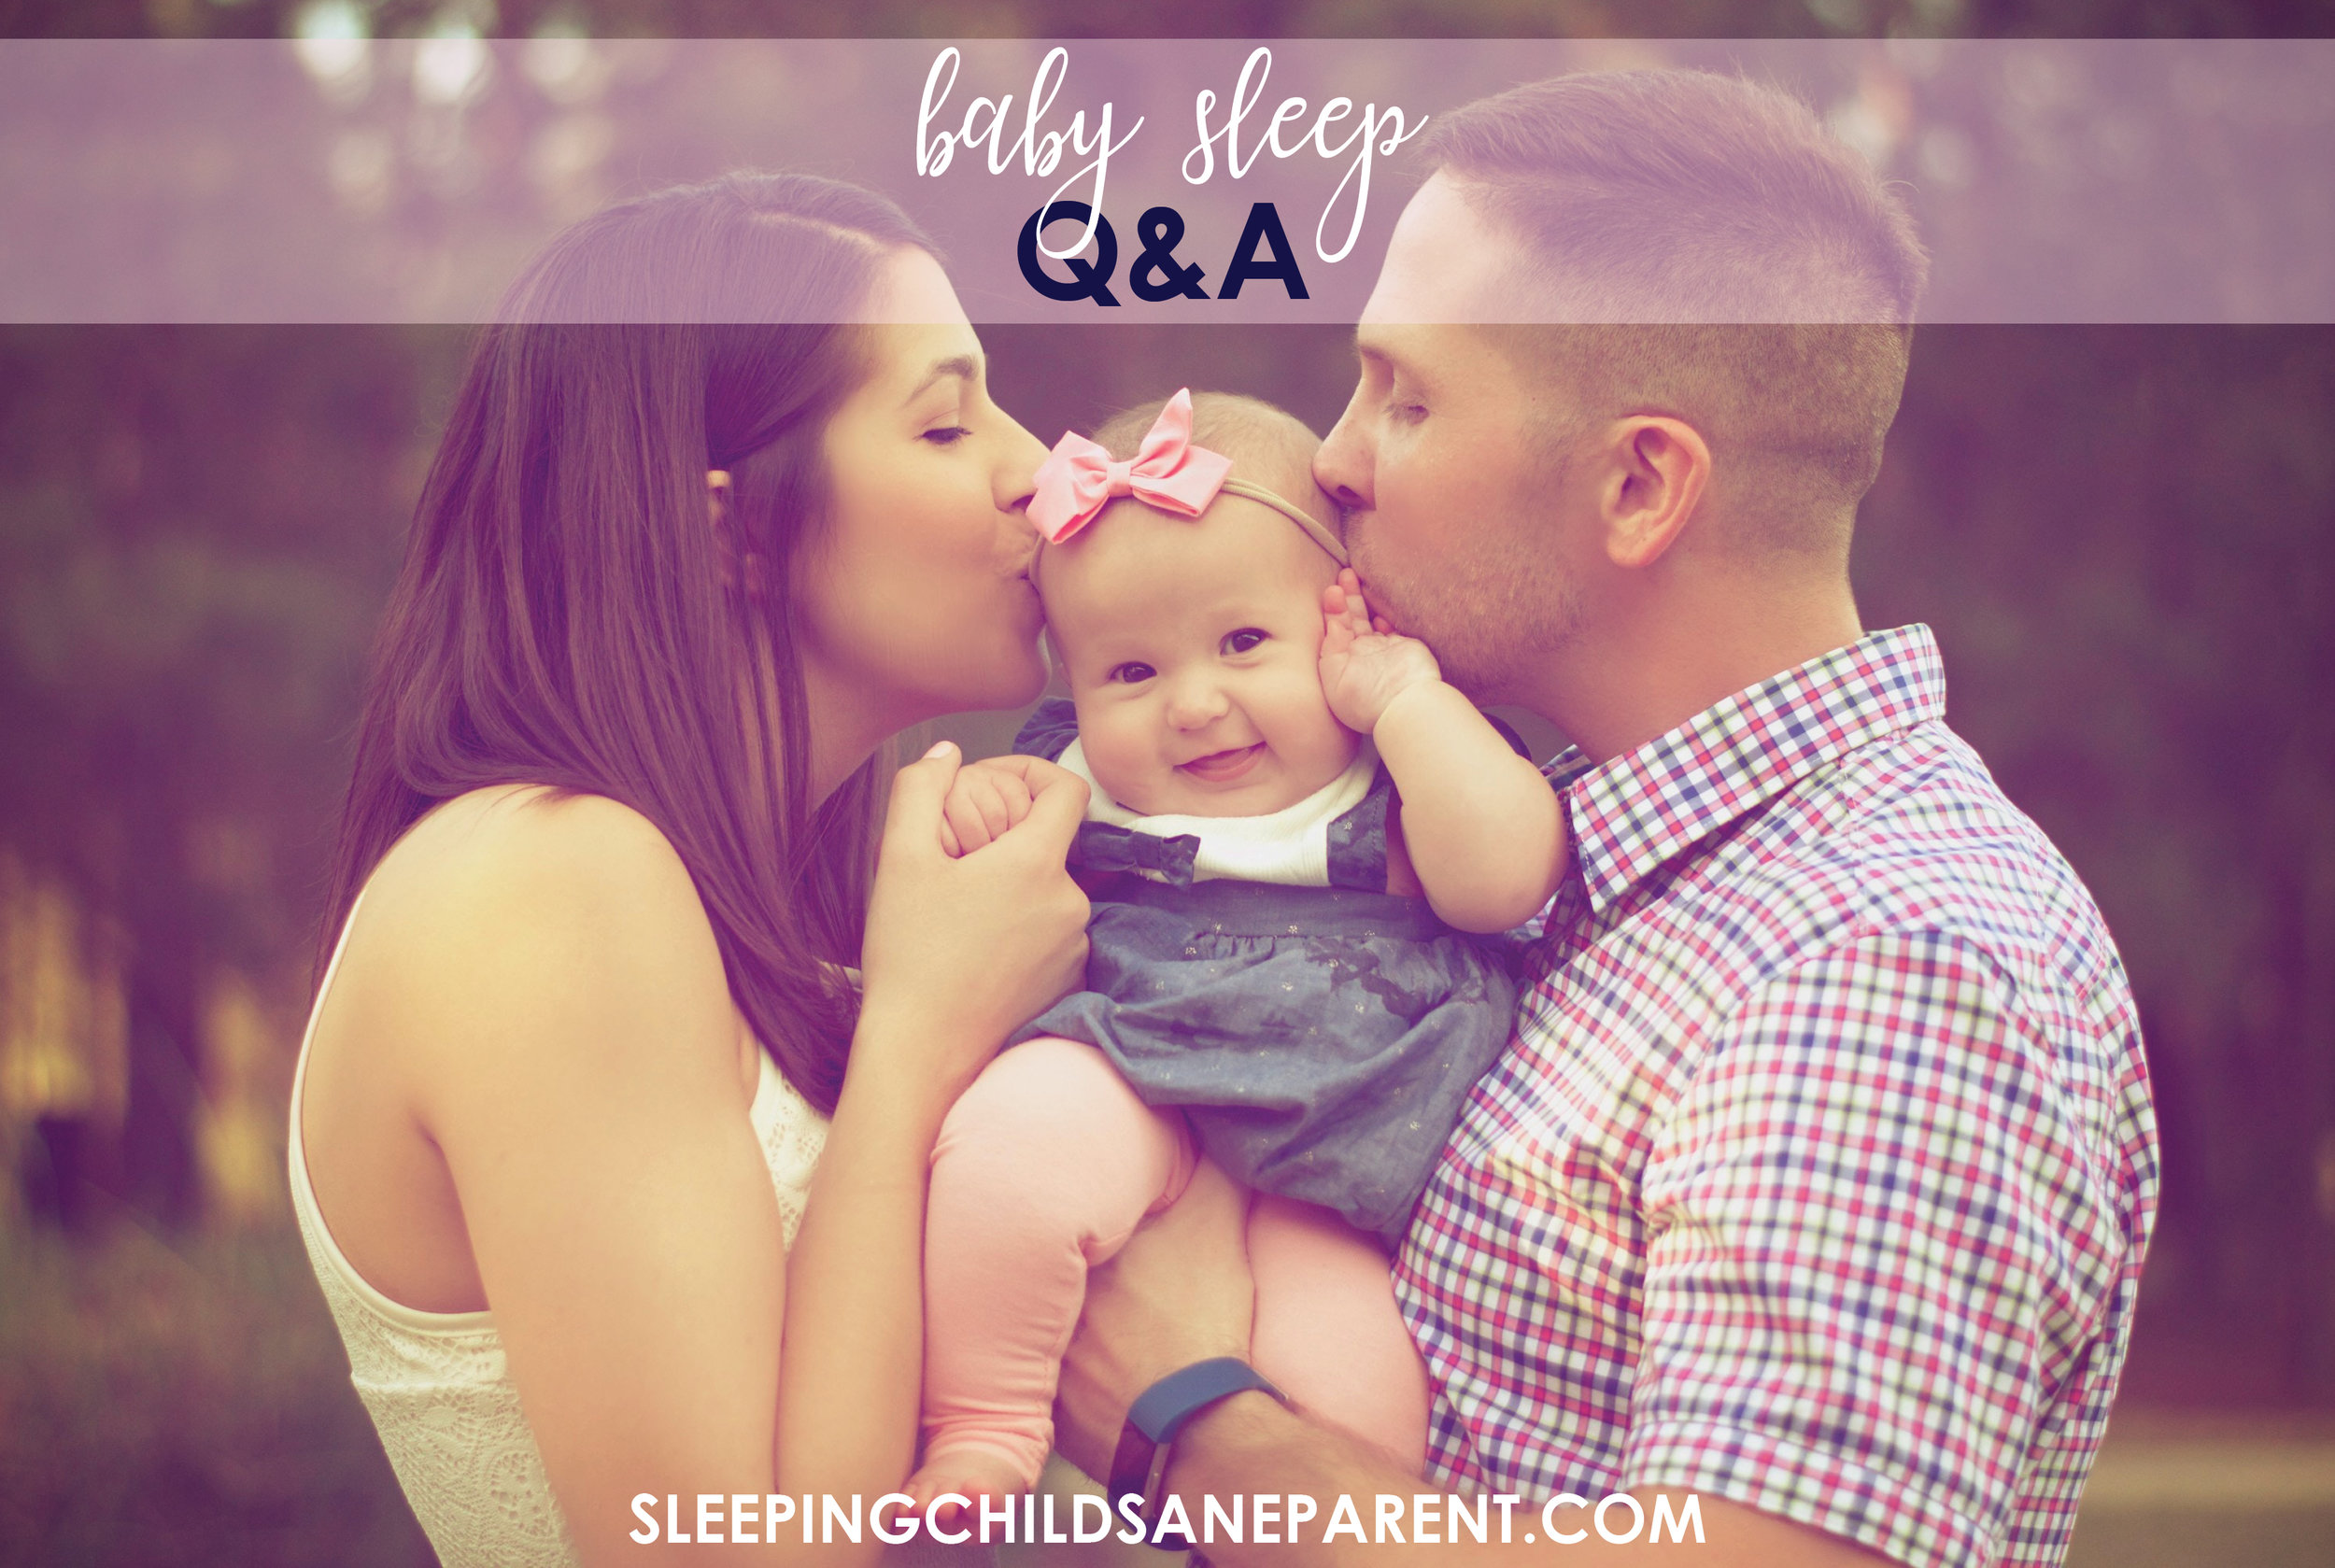 Do you have questions about baby sleep? Check out this post for questions and answers about dream feeds, bouncing Baby to sleep, teething, prolonged nightwakings, or dropping night feeds.